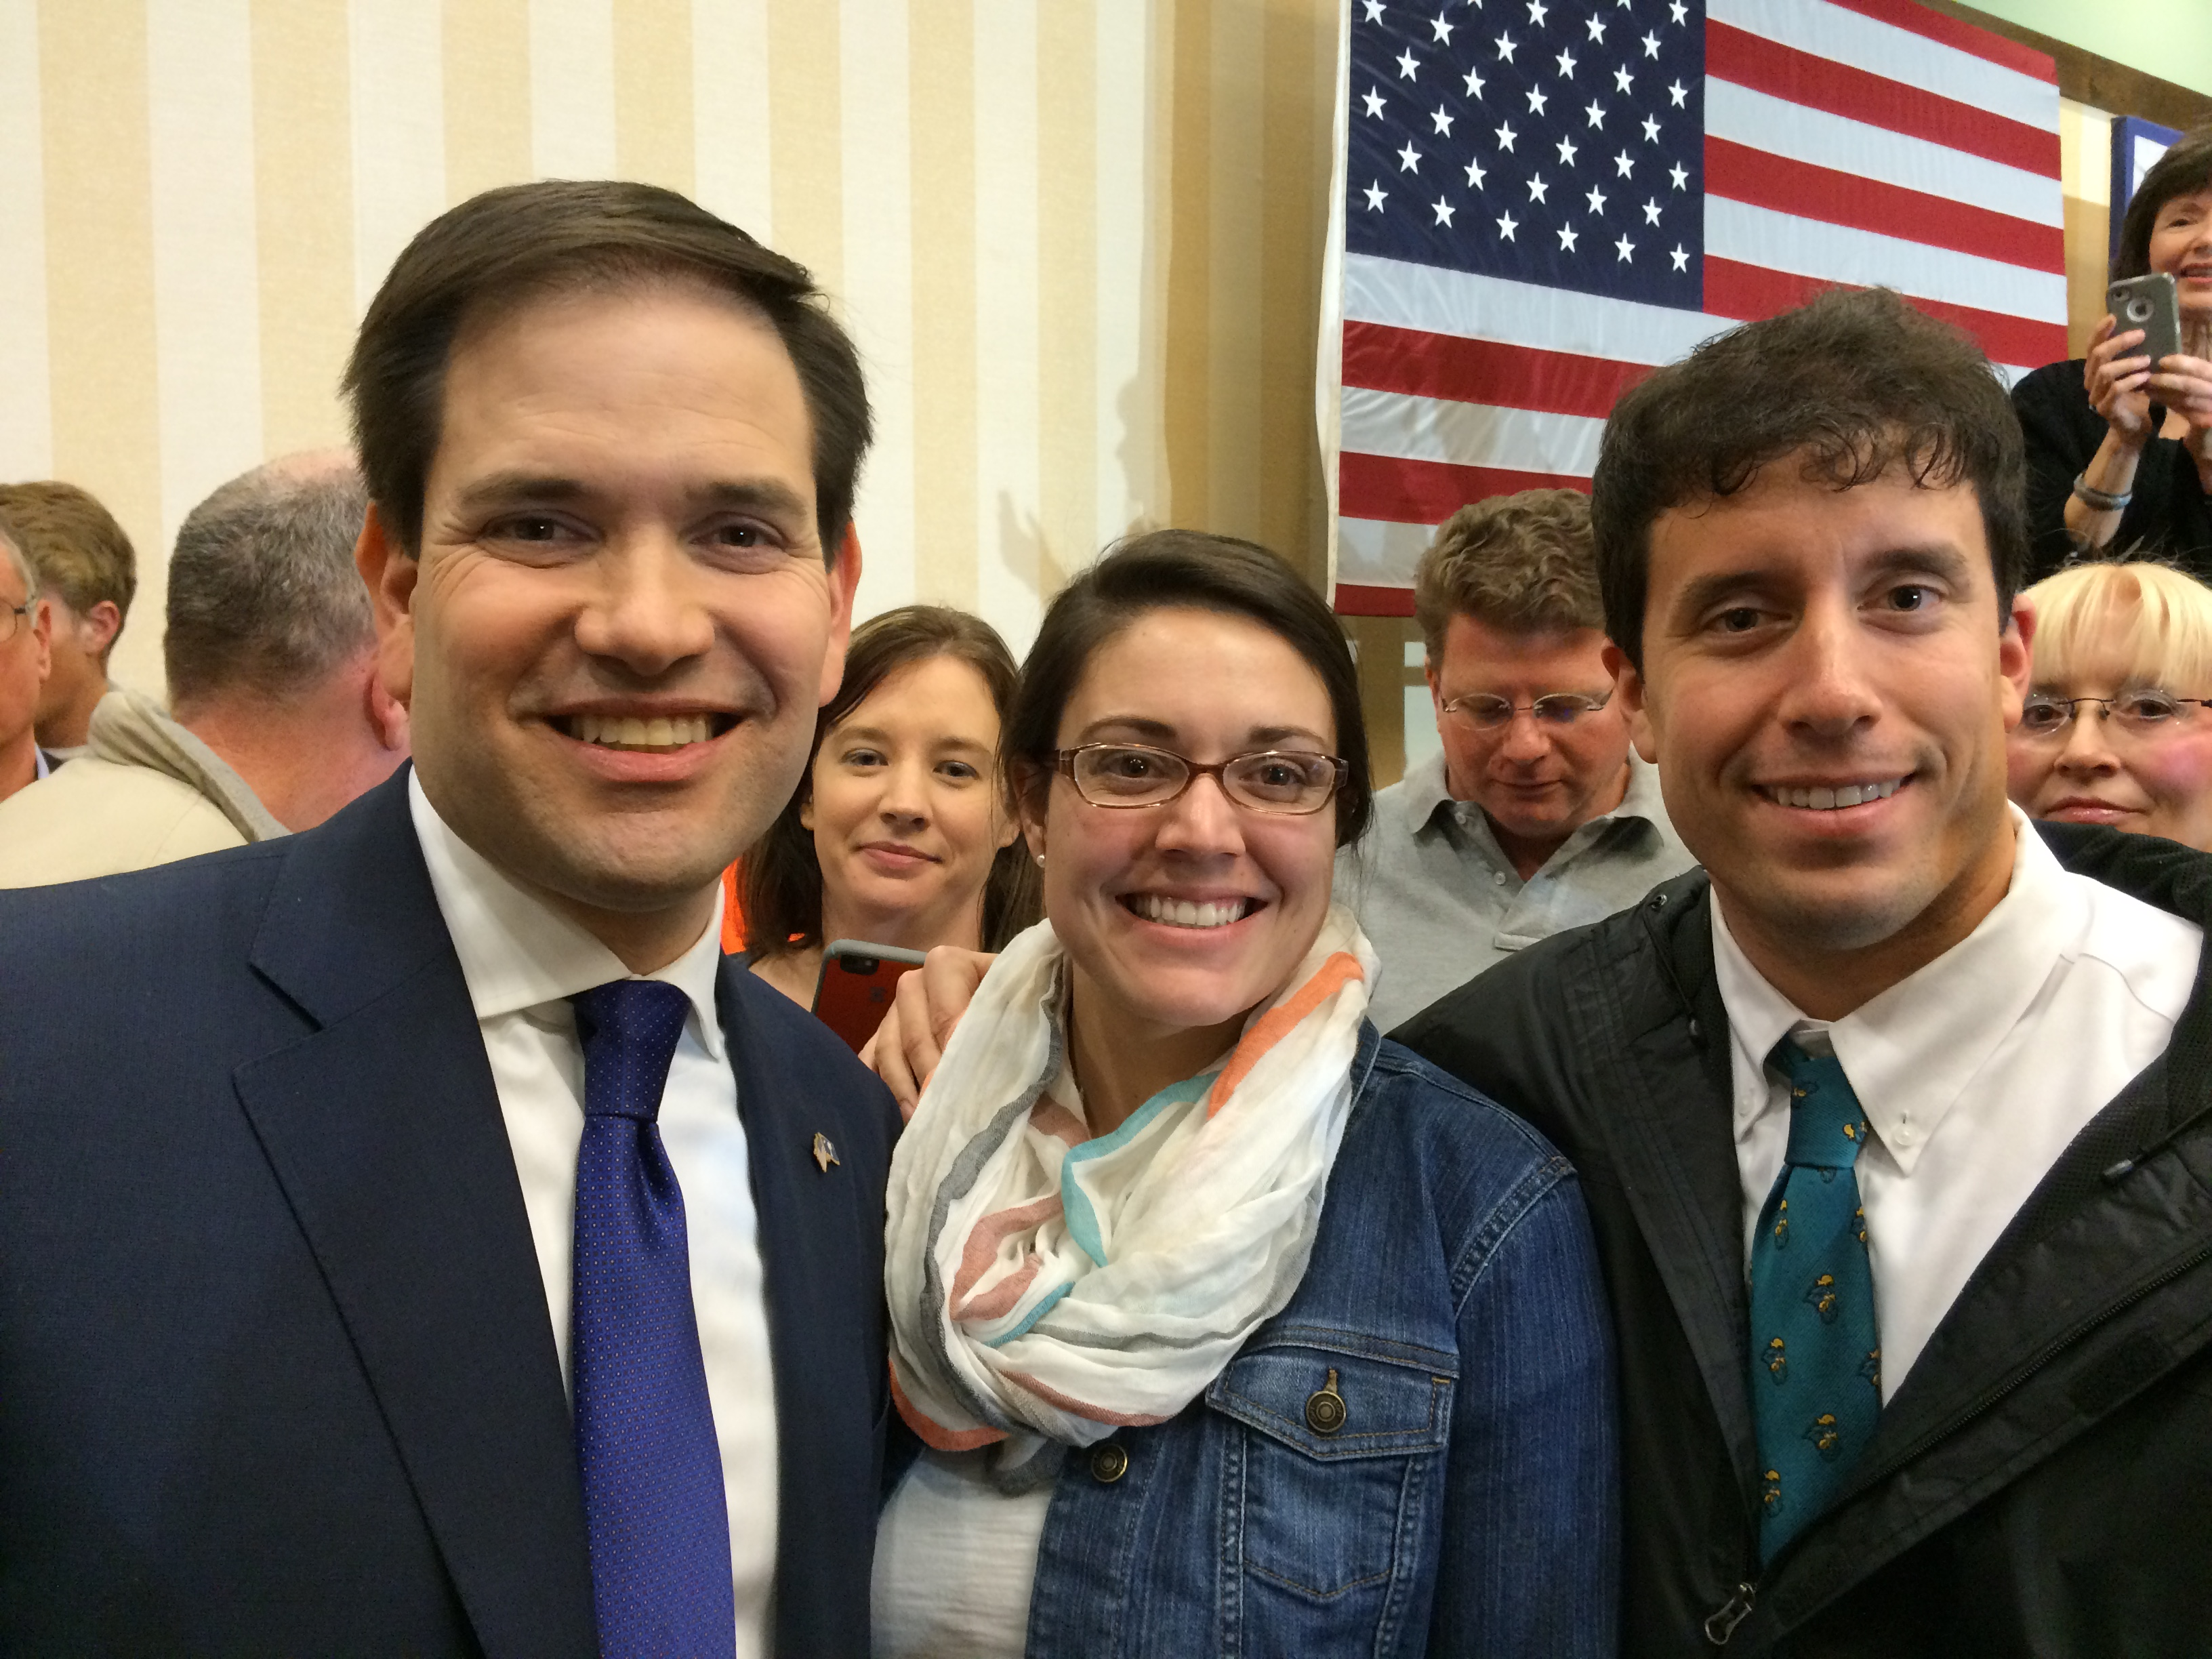 You bet! Sidney and I met Marco Rubio